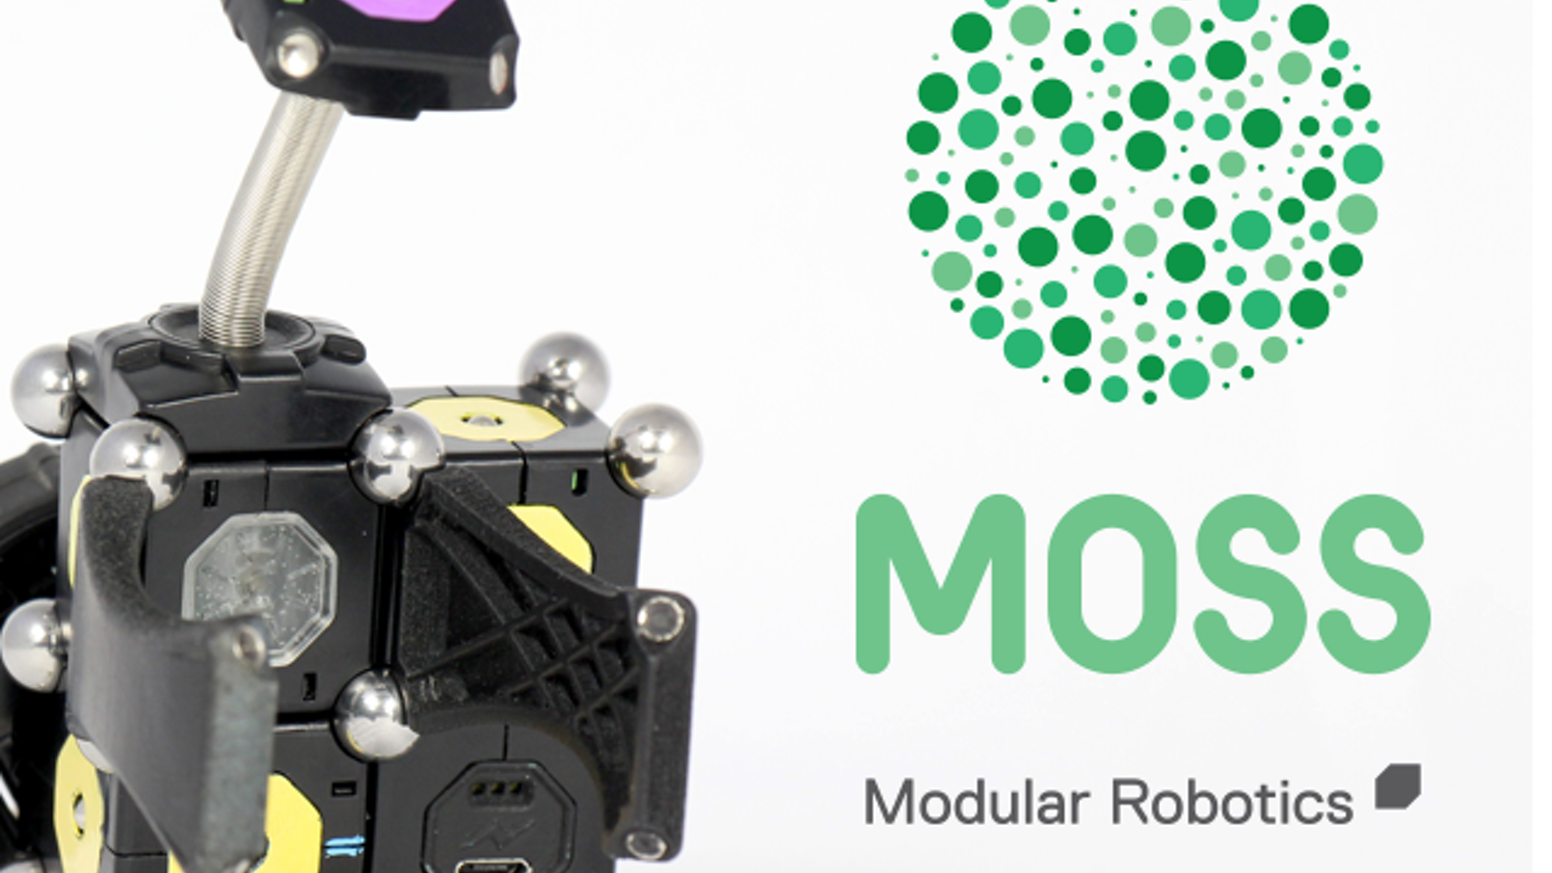 Build your own robots with MOSS! Simple, fun, magnetic robot construction kits. No coding, no wires, oodles of configurations!